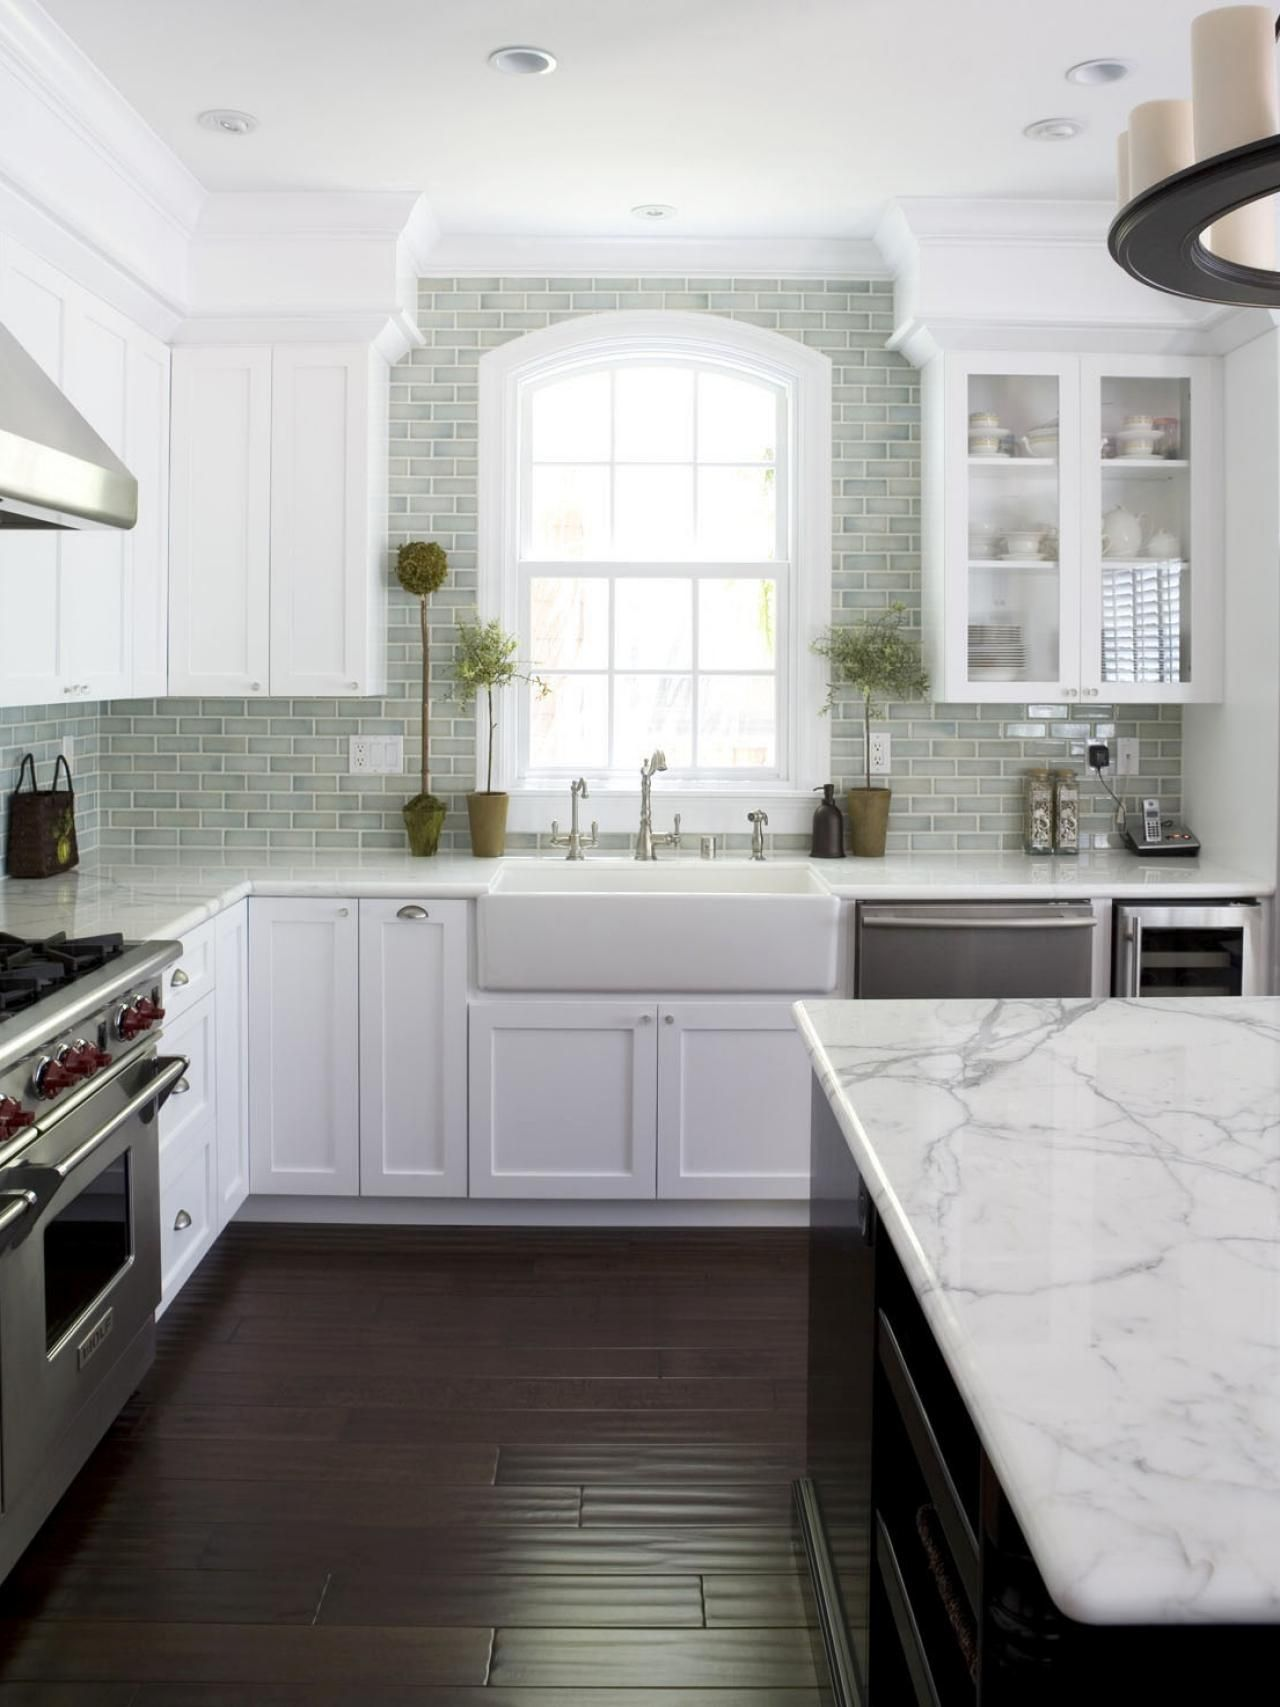 Our Favorite White Kitchens My Dream Kitchen Pinterest Hgtv - Images of kitchens with white cabinets